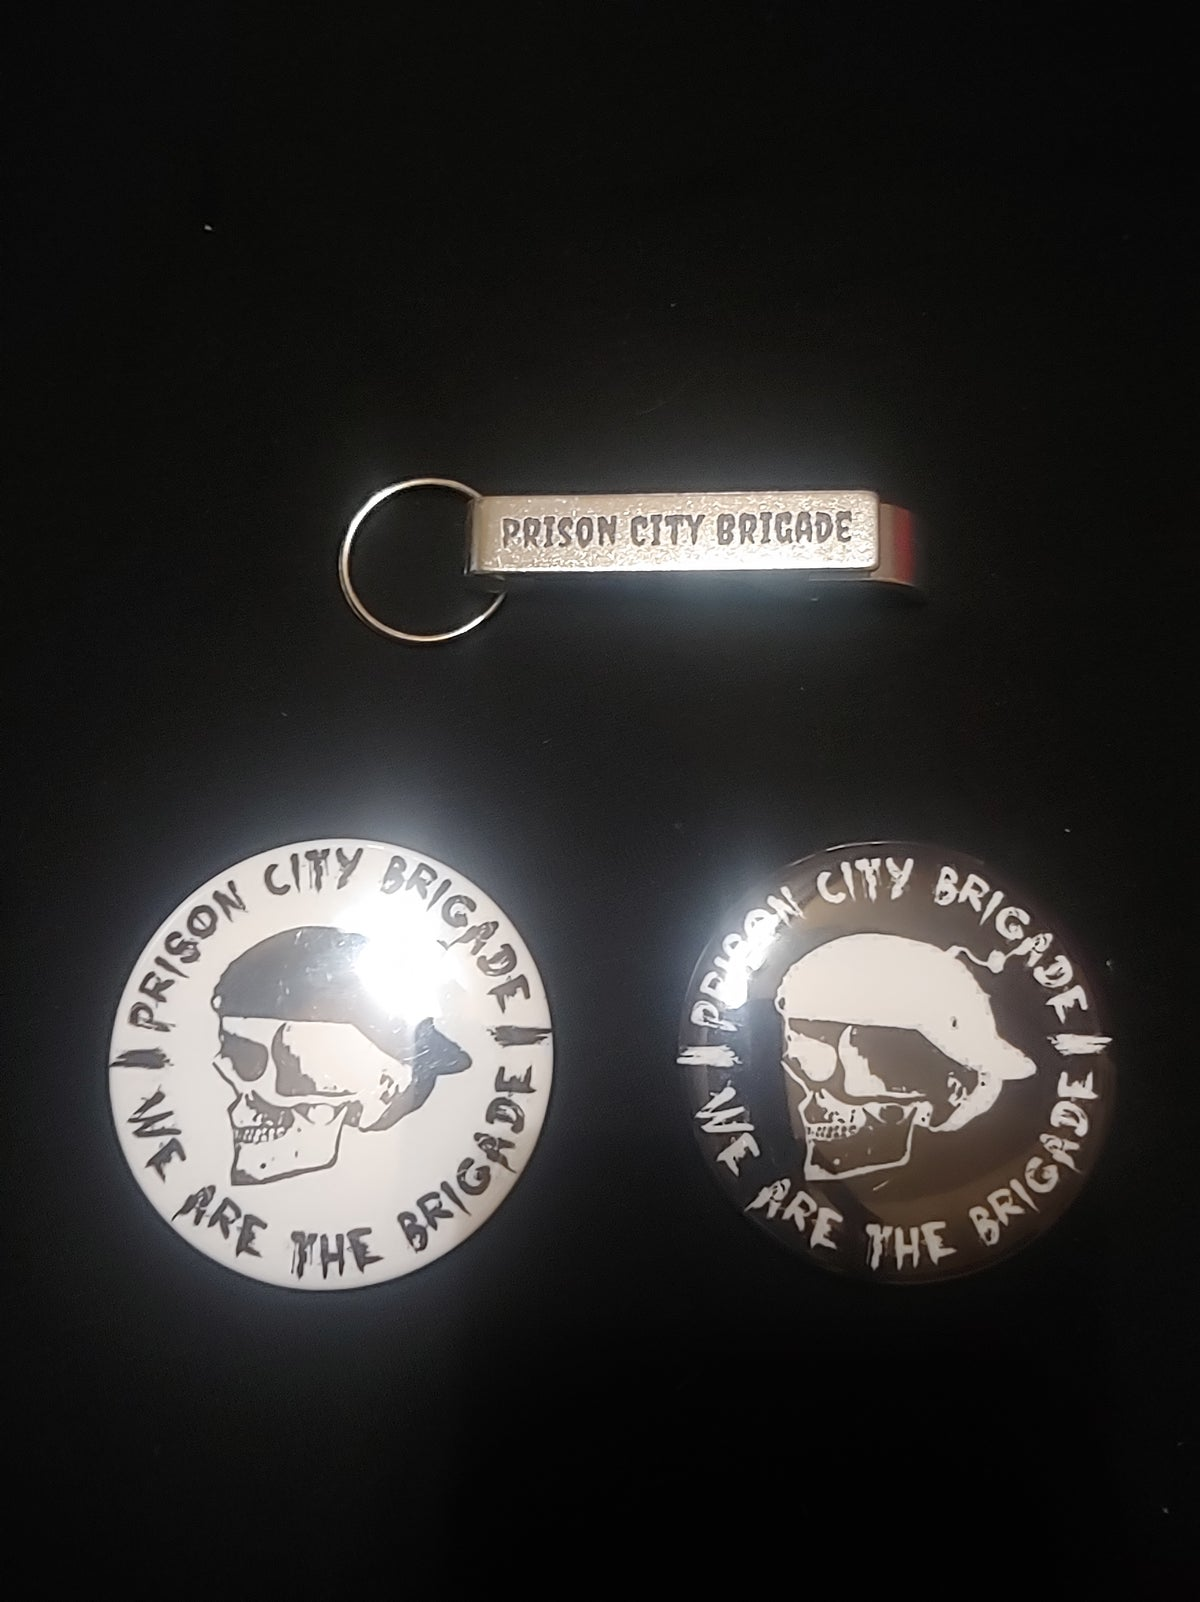 Prison City Brigade Bottle Openers